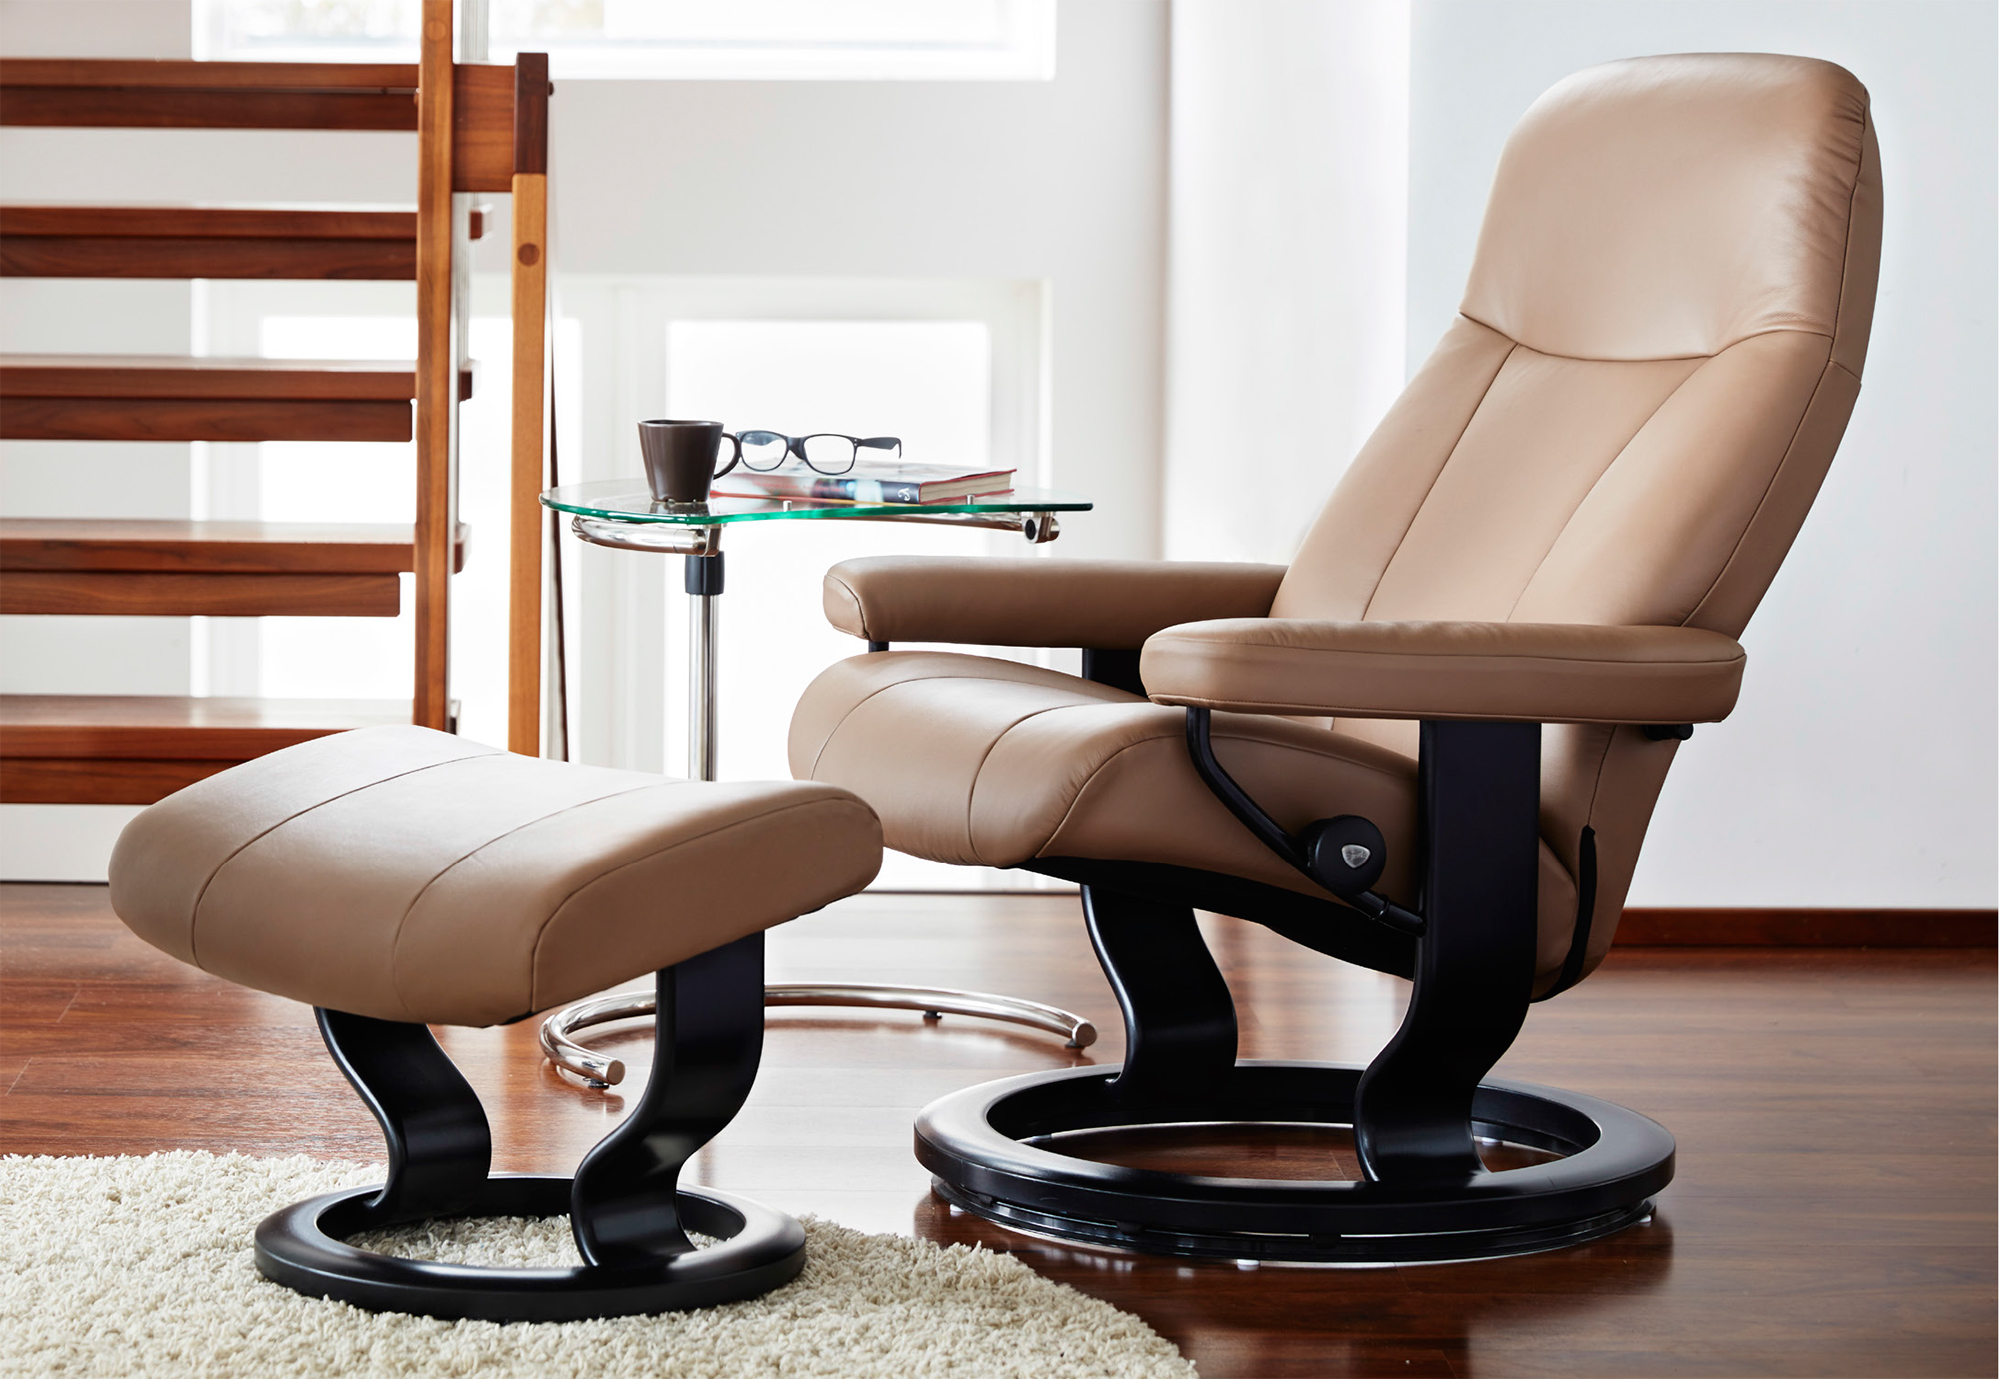 Stressless Garda Recliner Chair and Ottoman by Ekornes & Stressless Garda Recliner Chair and Ottoman by Ekornes. Garda ... islam-shia.org